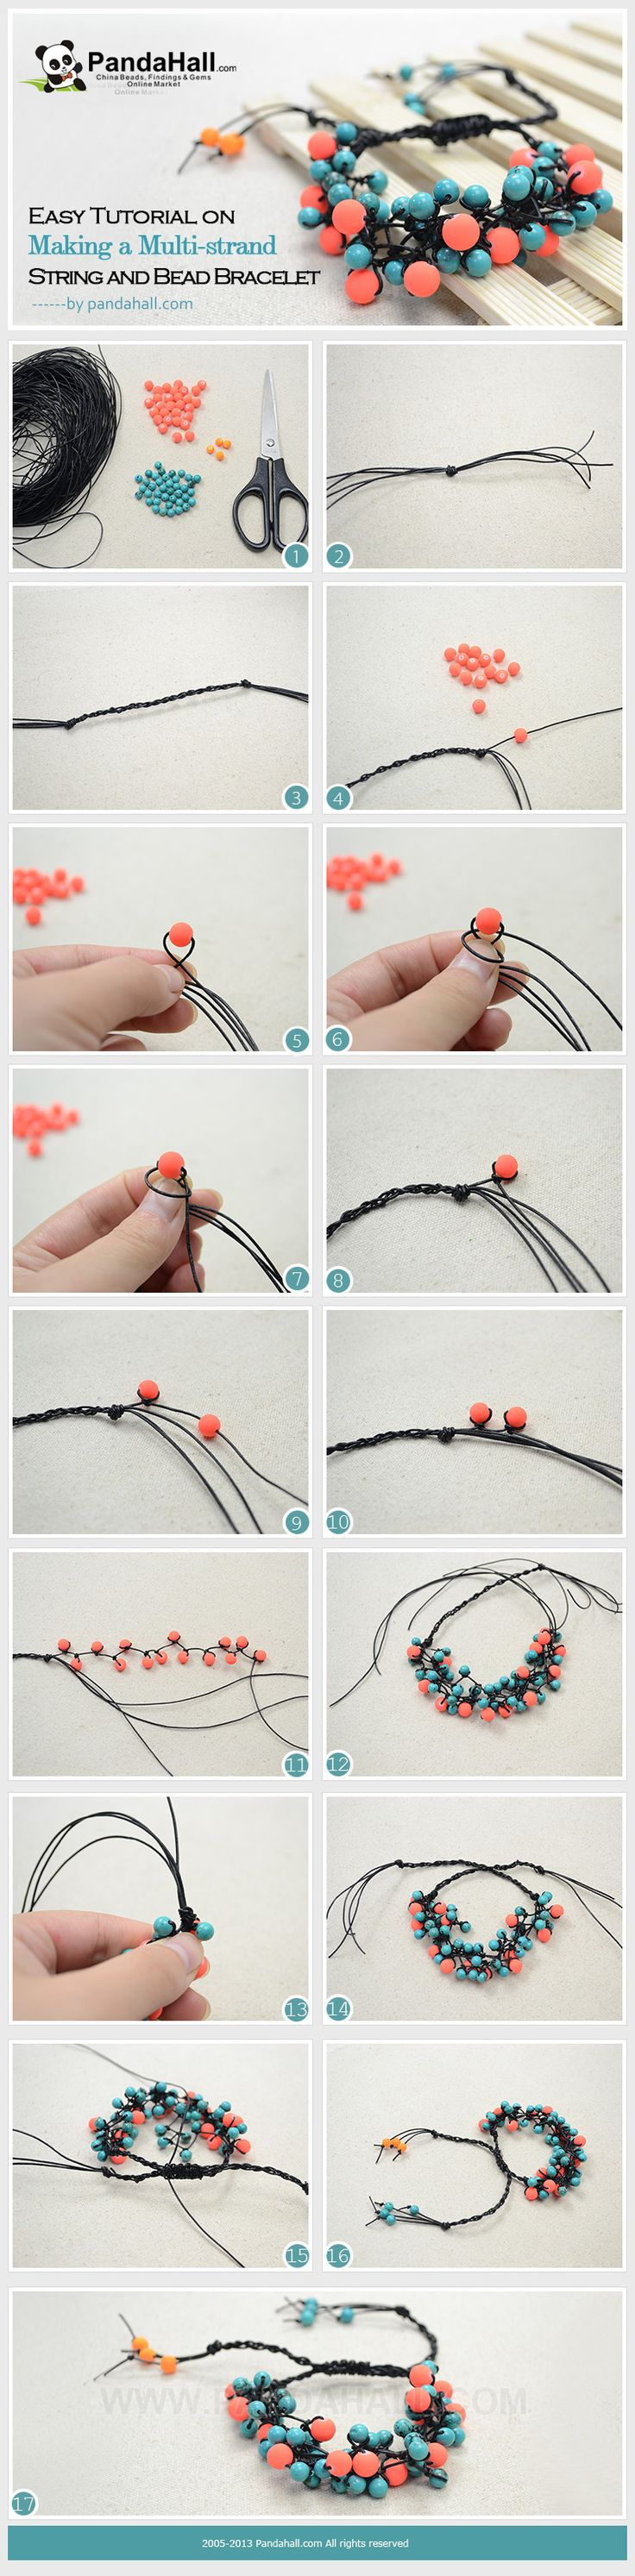 Easy Tutorial on Making a Multi-strand String and Bead Bracelet (link verified)